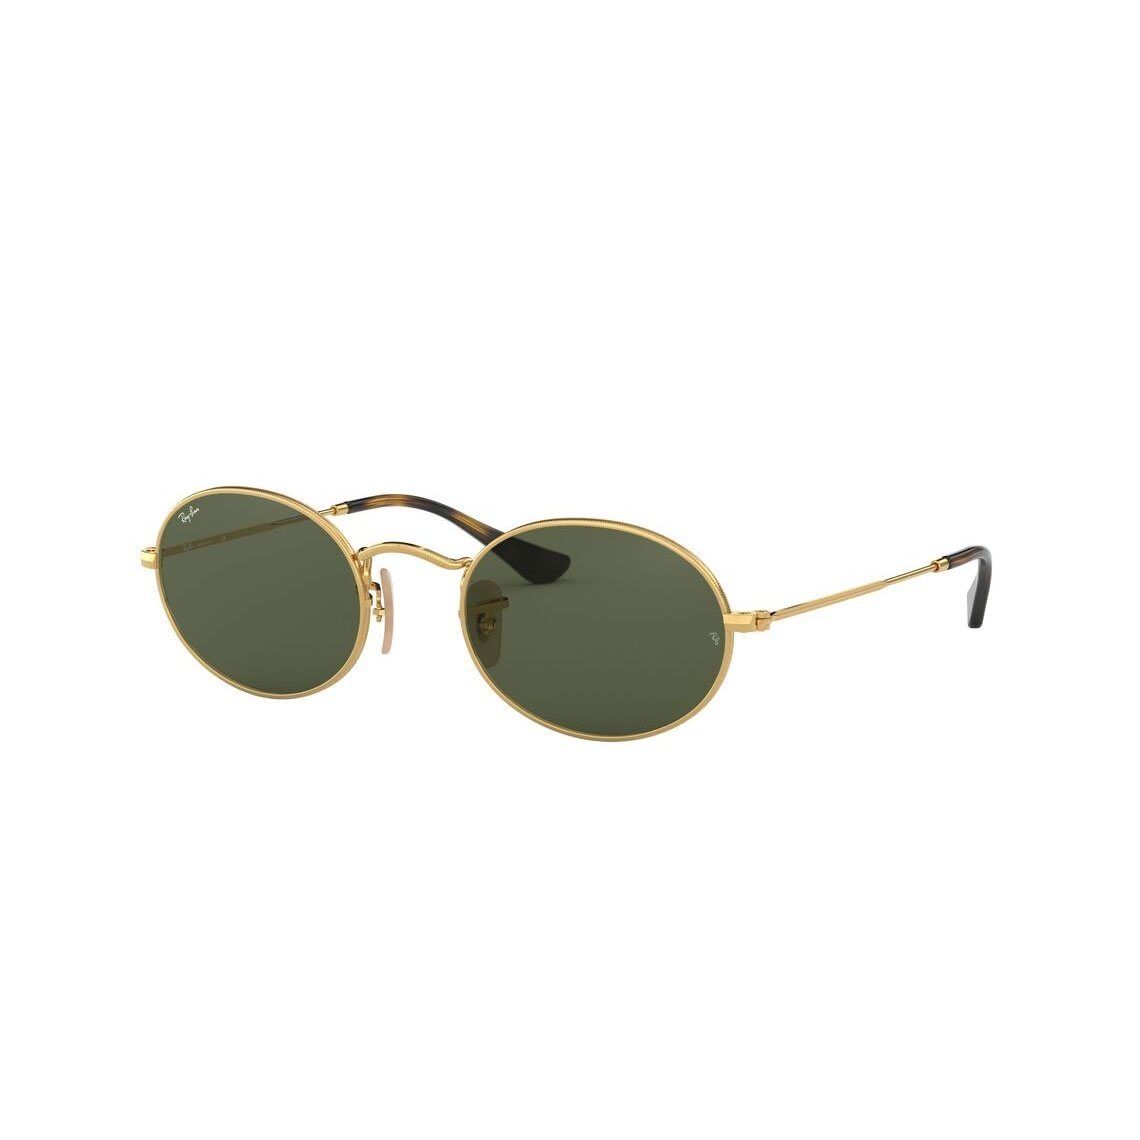 Ray-Ban Oval flat lenses RB3547N 001 54